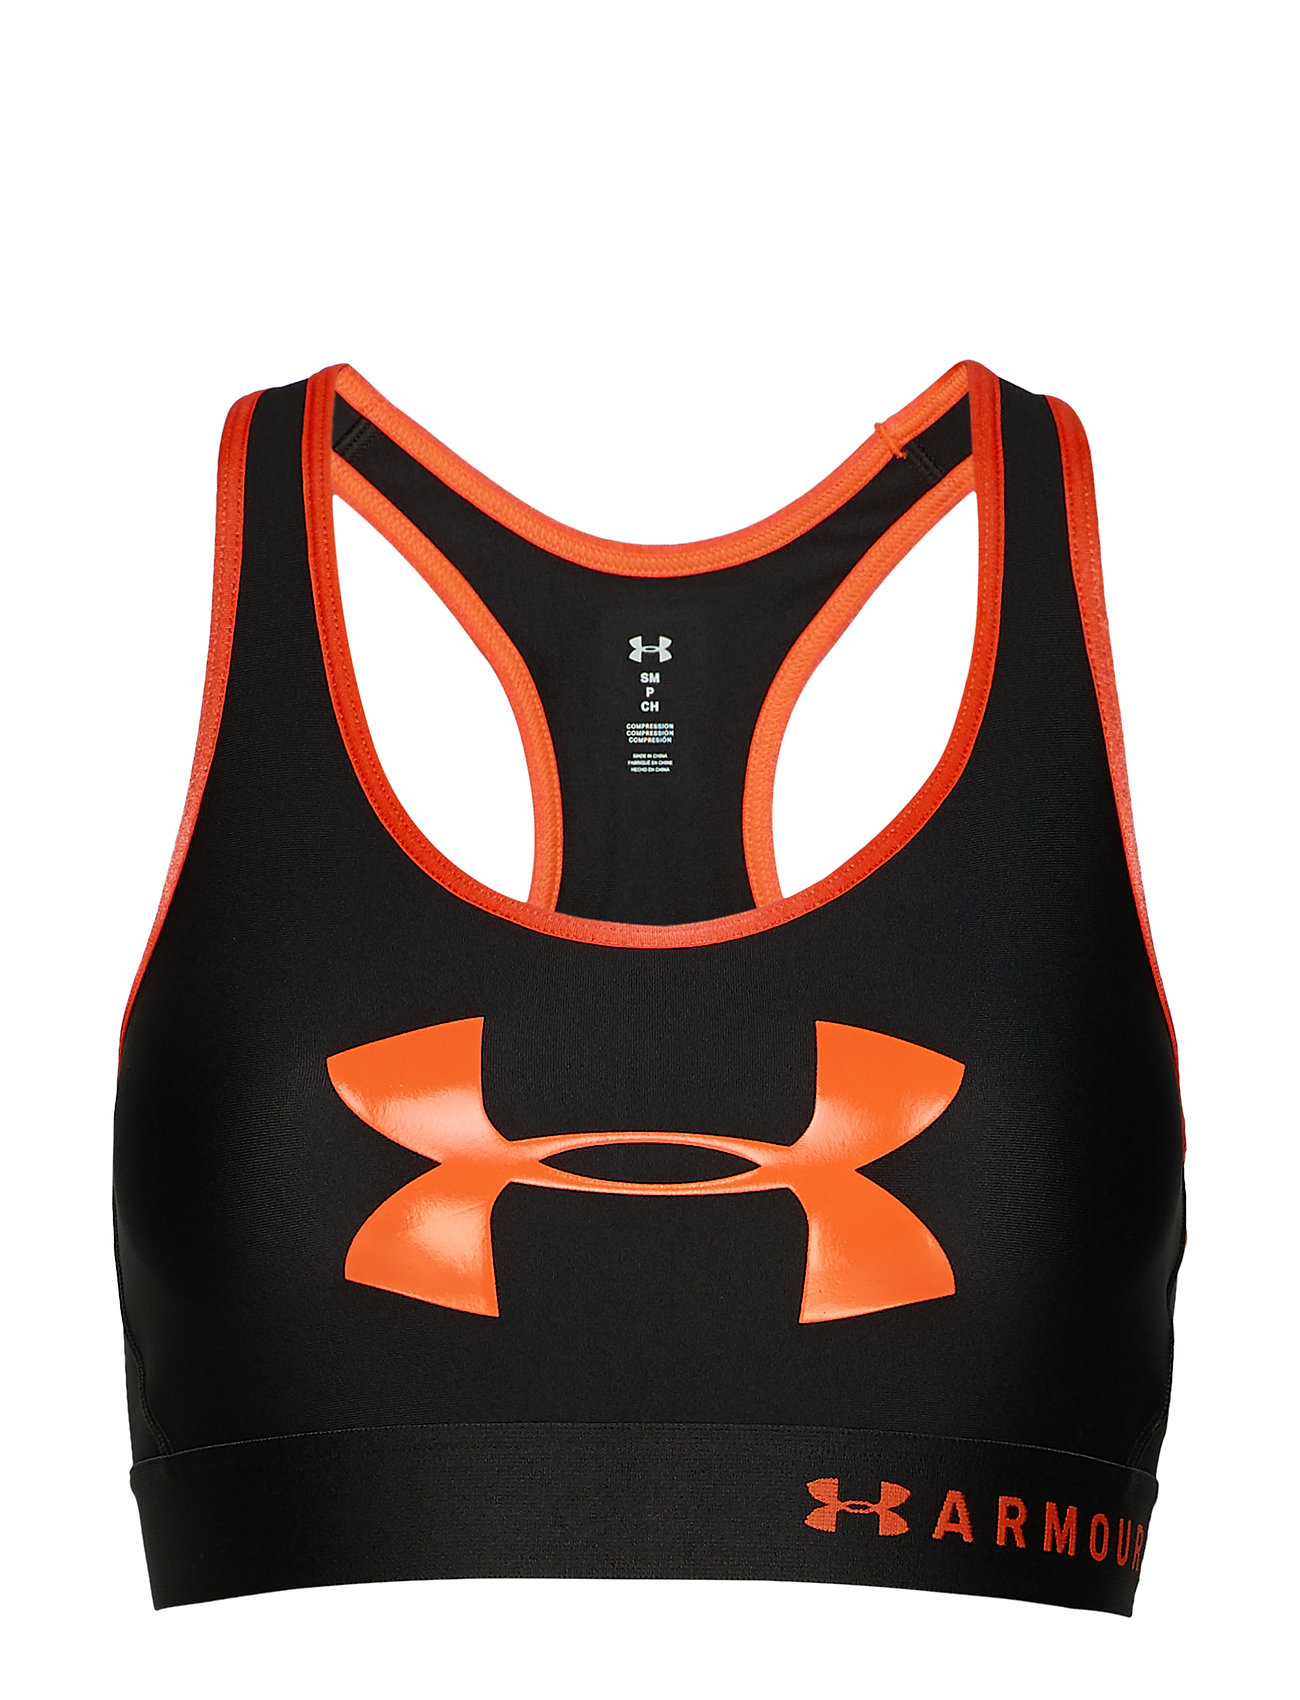 Armour Armour GraphicblackUnder Keyhole Mid Keyhole Mid GraphicblackUnder Armour GraphicblackUnder Armour Mid Keyhole b7yYf6g